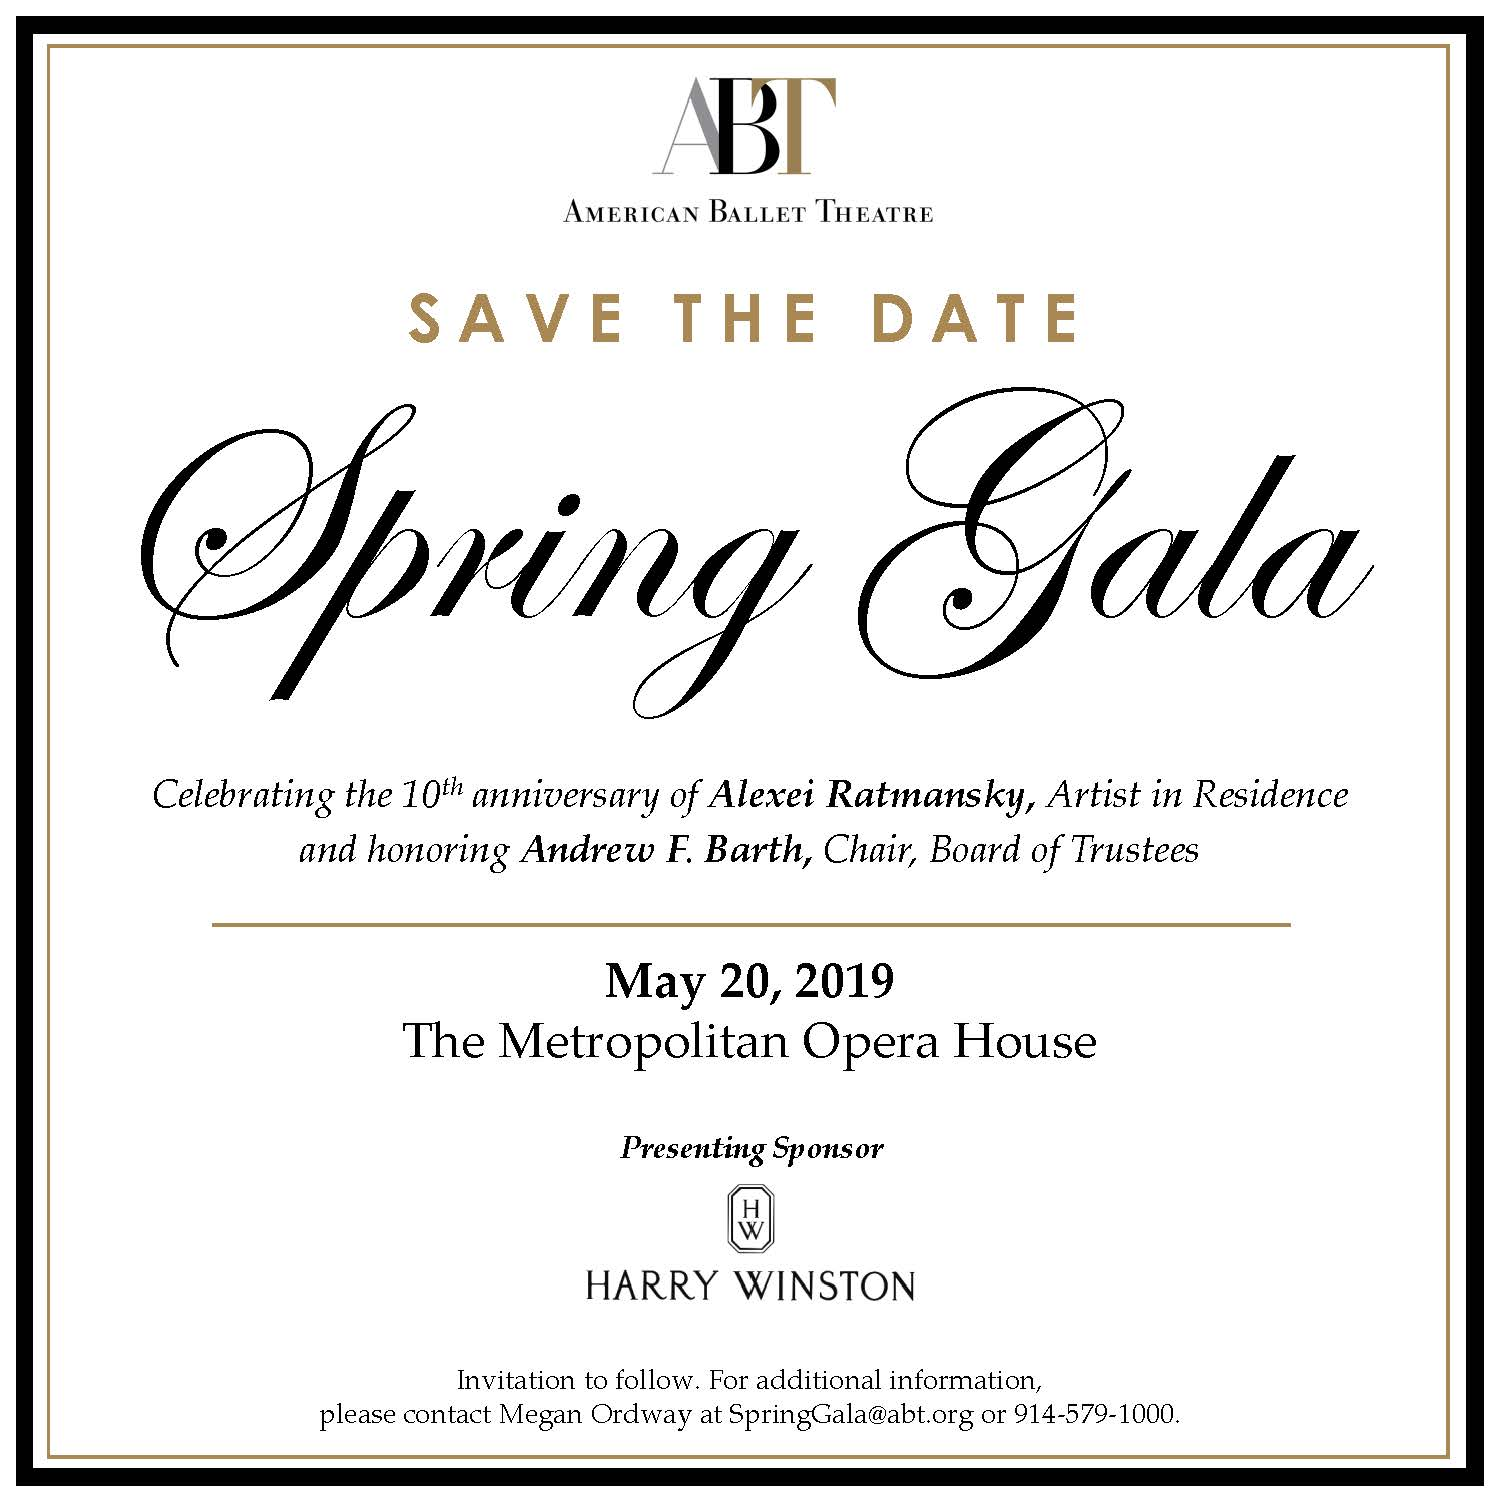 2019 Spring Gala Save the Date